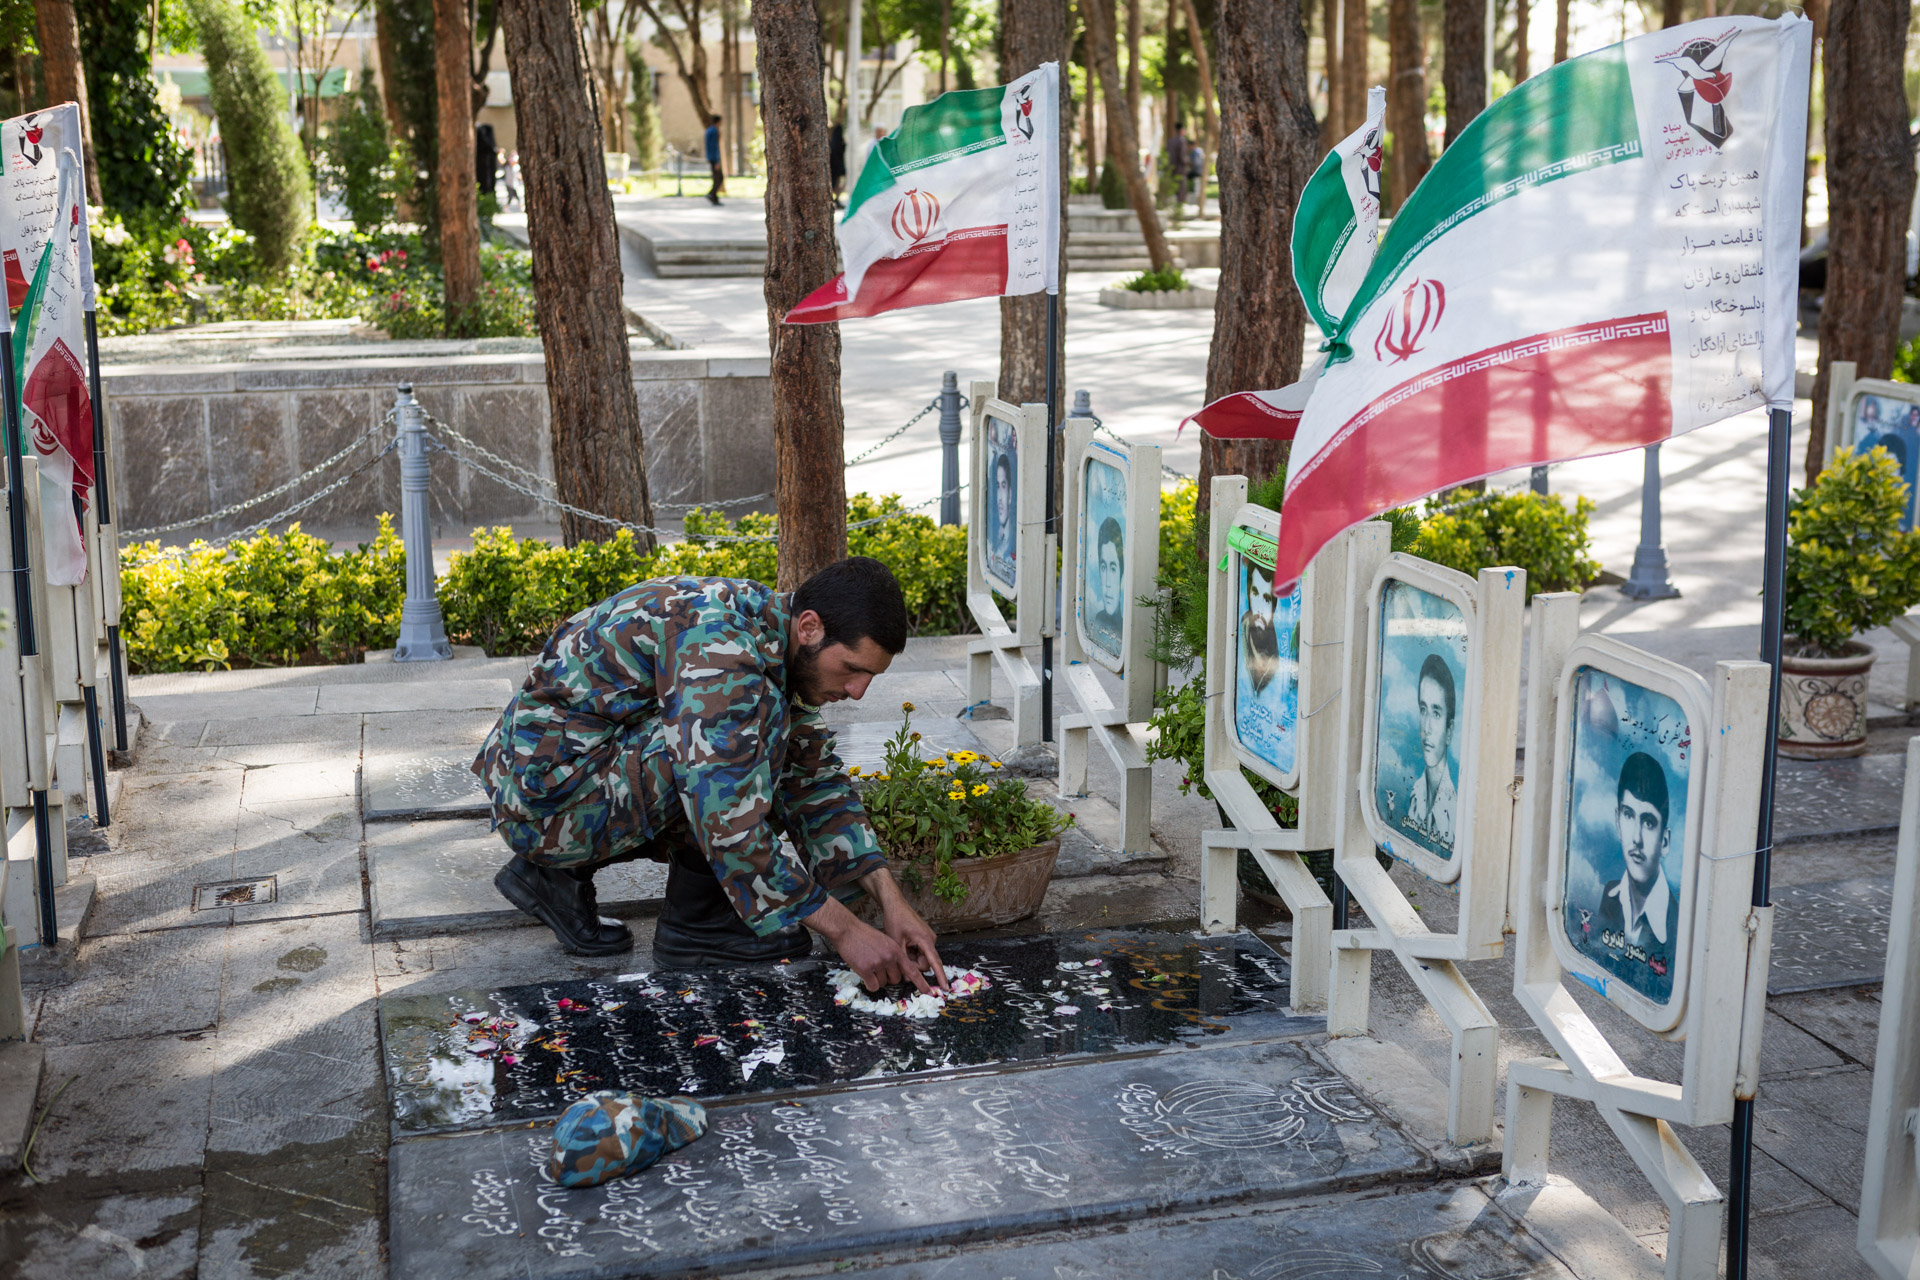 An Iranian soldier spends time at the grave of a fallen martyr.